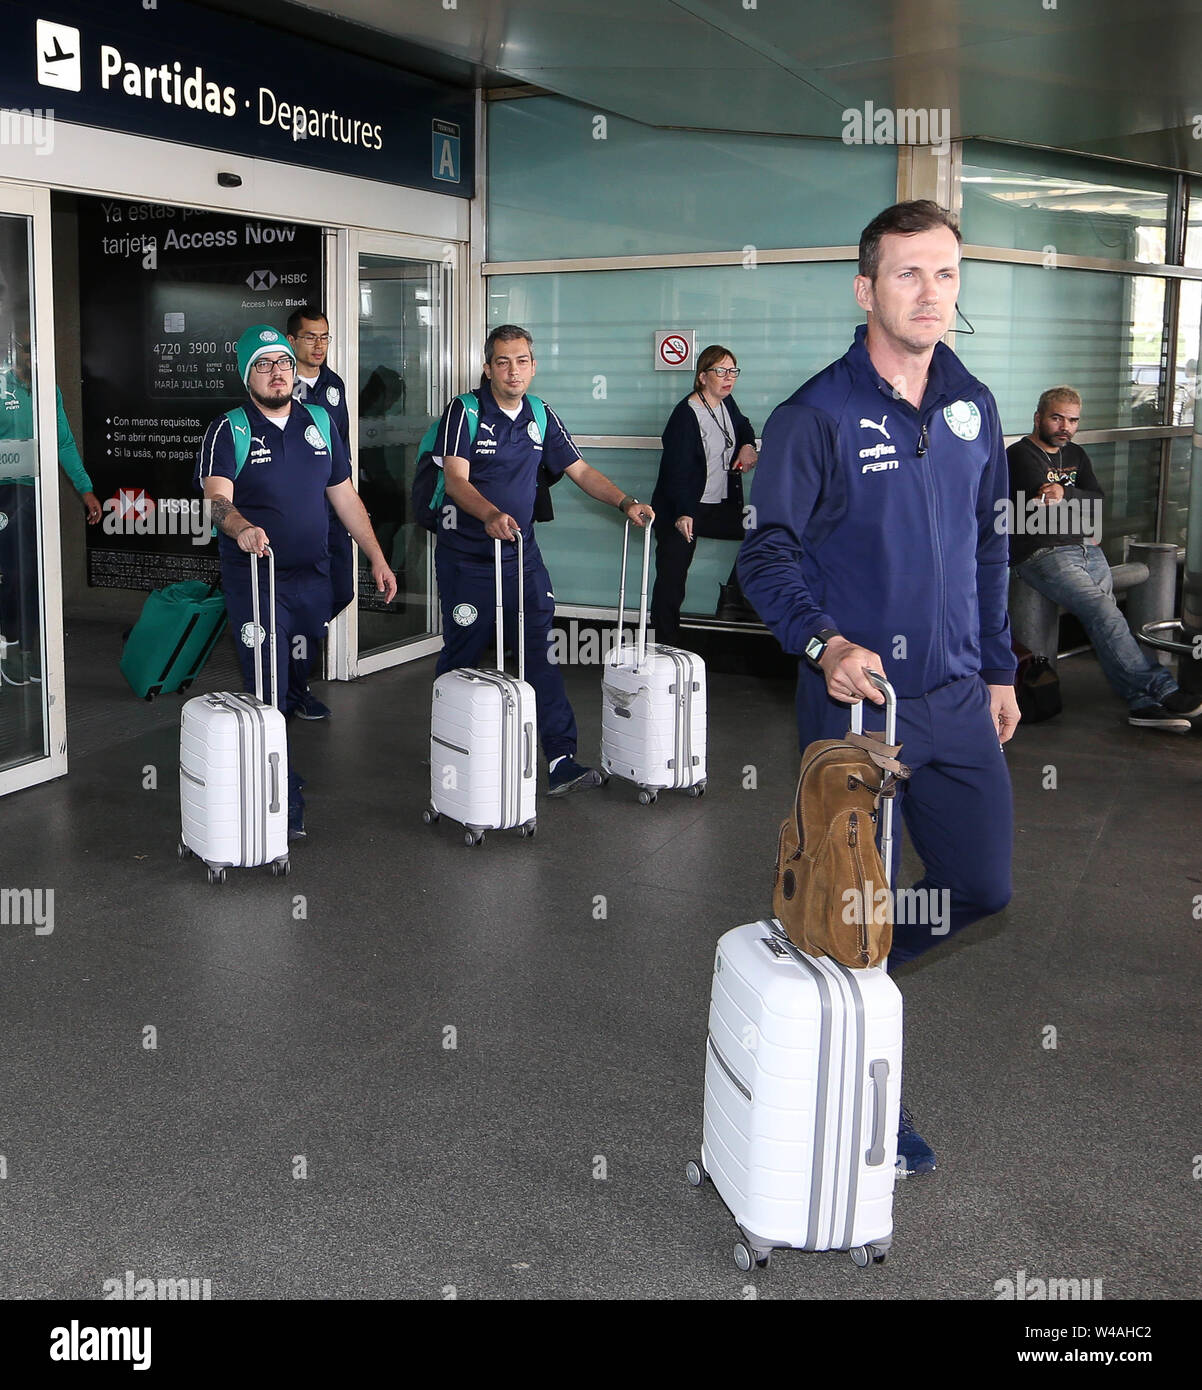 Buenos Aires, Argentina. 21st July, 2019. The assistant coach Paulo Turra, SE Palmeiras, during landing, at the International Airport of Buenos Aires. Credit: Cesar Greco/FotoArena/Alamy Live News - Stock Image